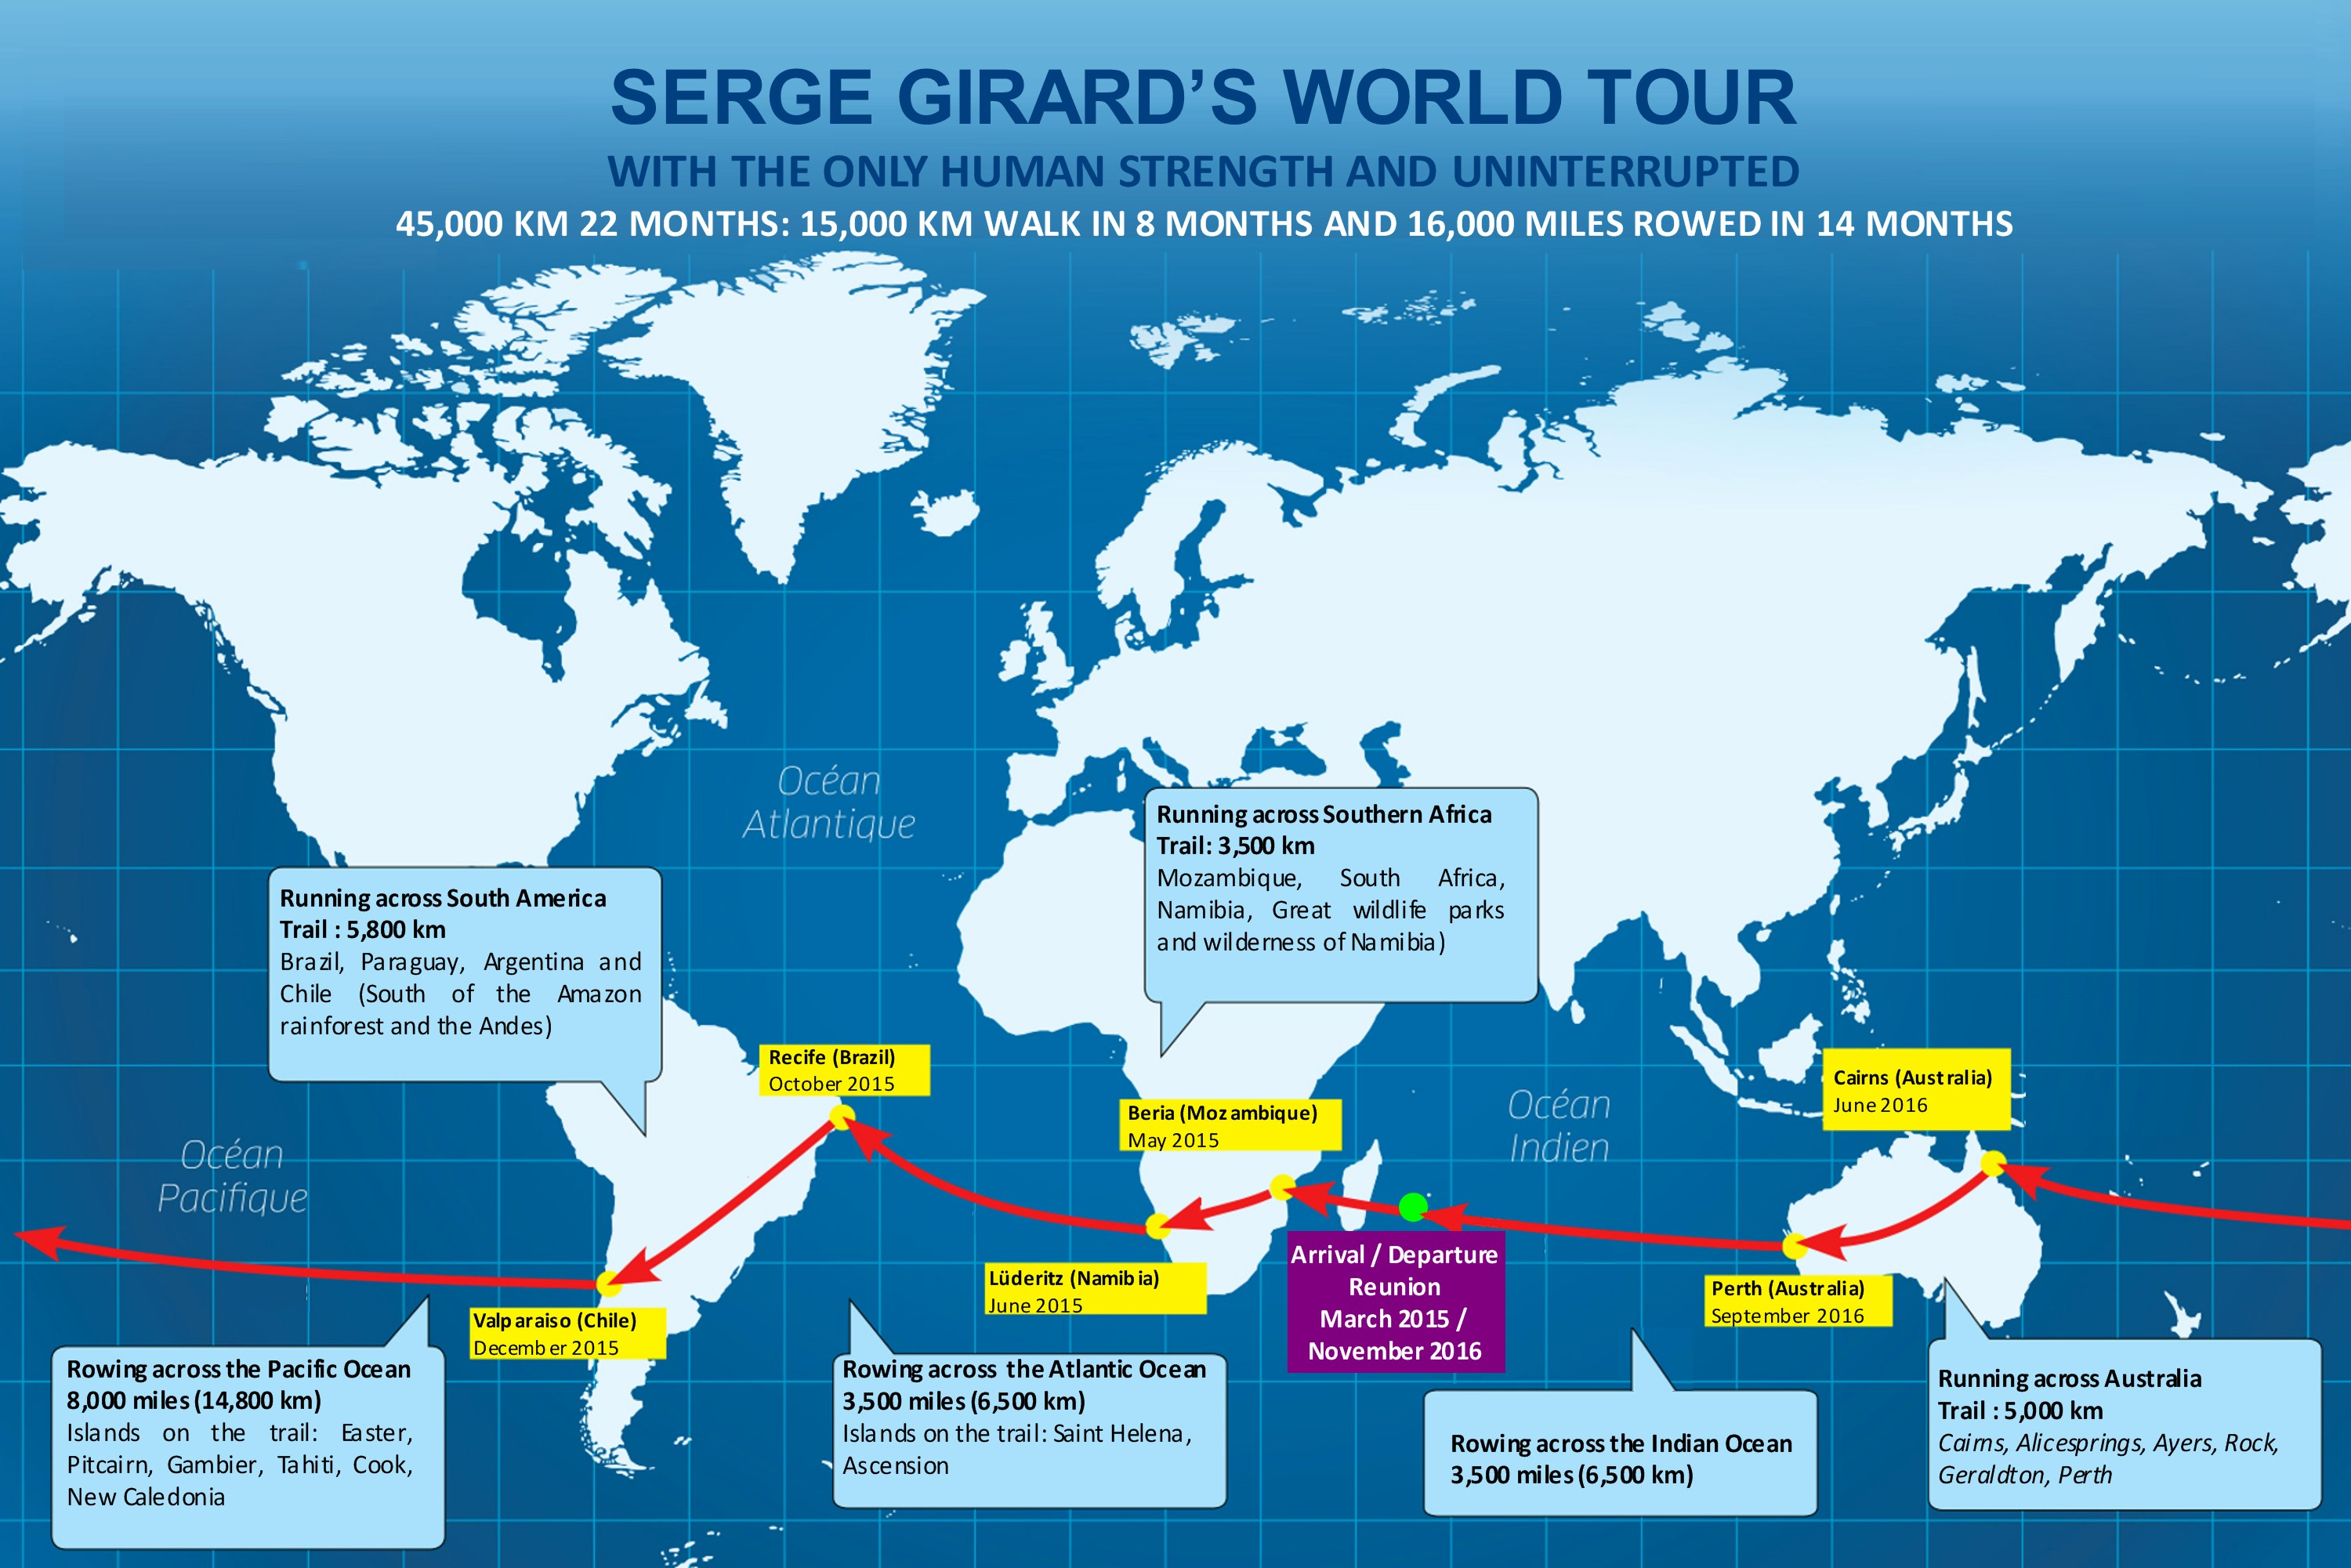 Serges's route around the world